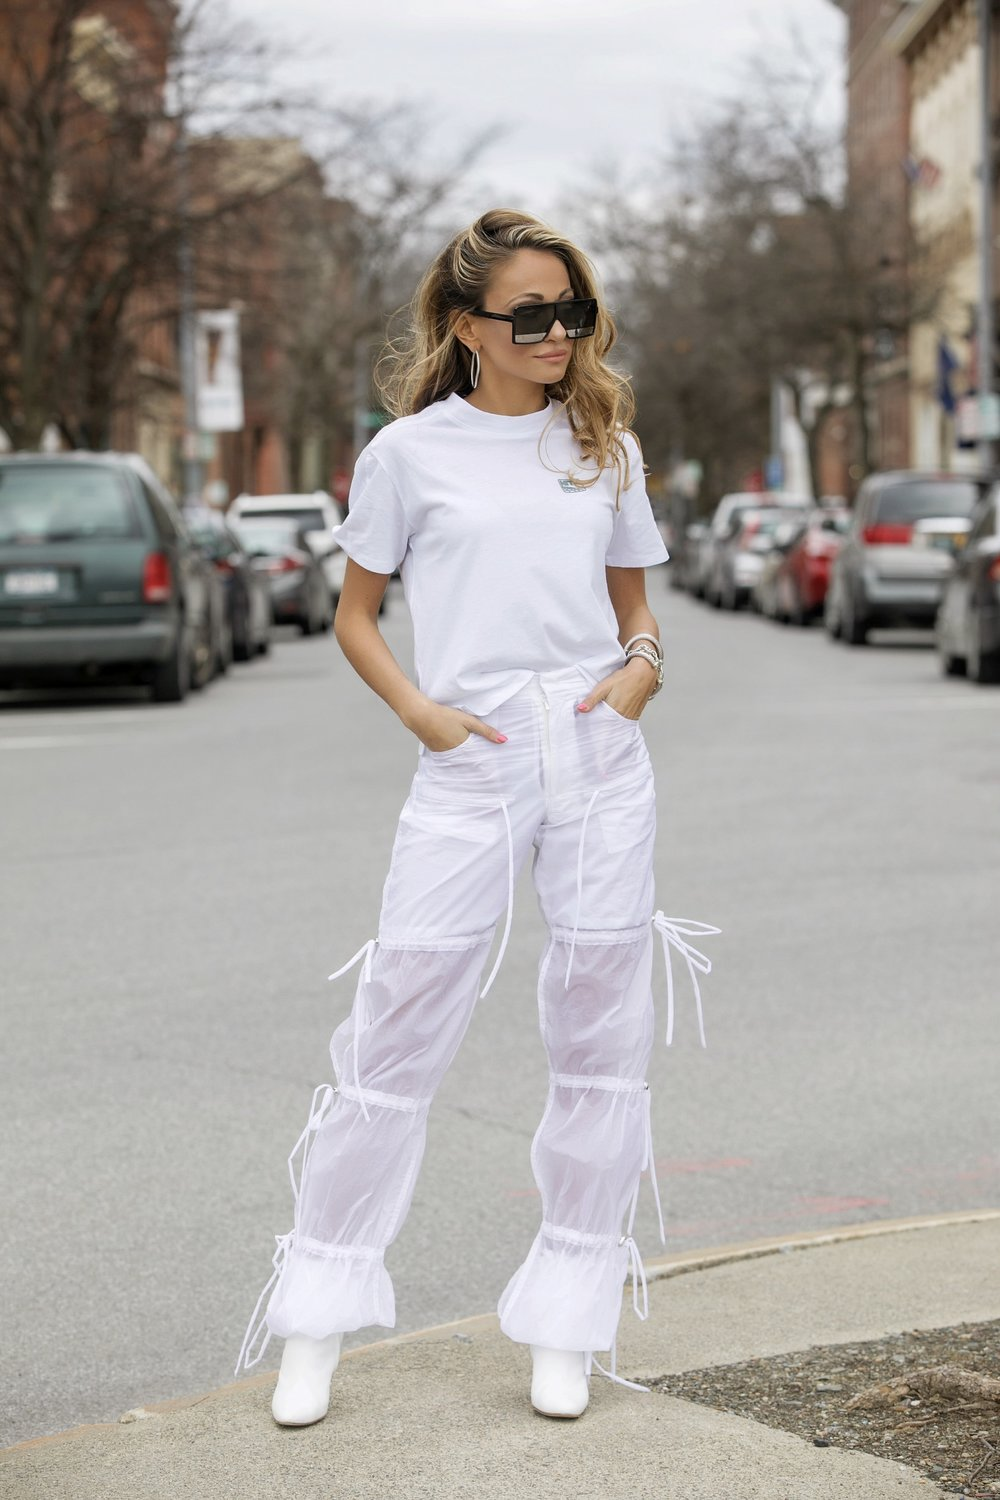 Saint Lauren sunglasses, Kith tee via netaporter, blindness semi-sheer pants, and manolo blahnik boots